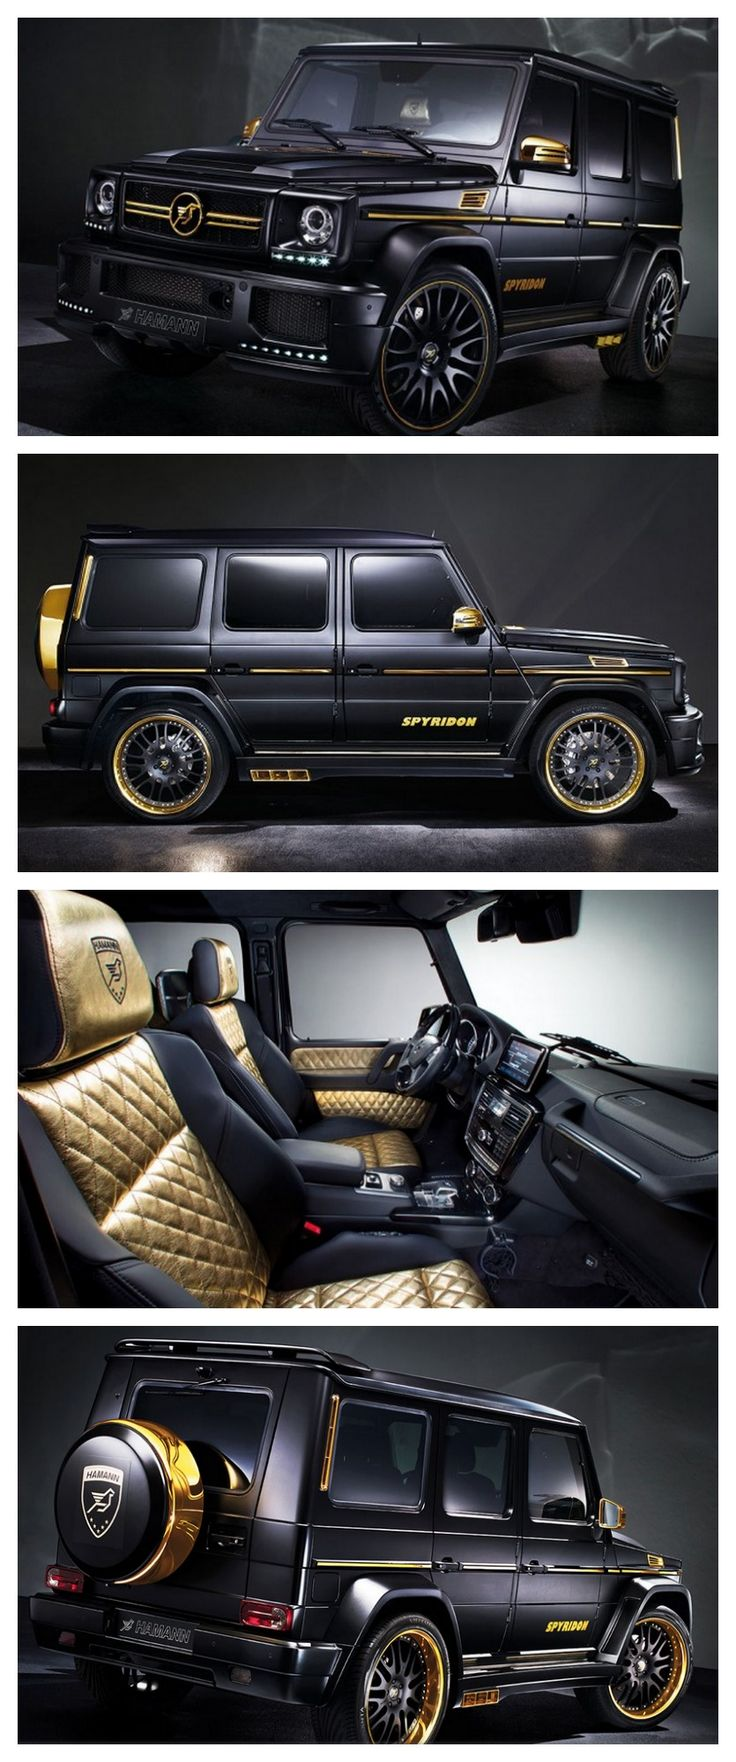 OMG! The World's Most Expensive SUVs. Check out the the most extravagant Mercedes-Benz G65 AMG you will ever see!